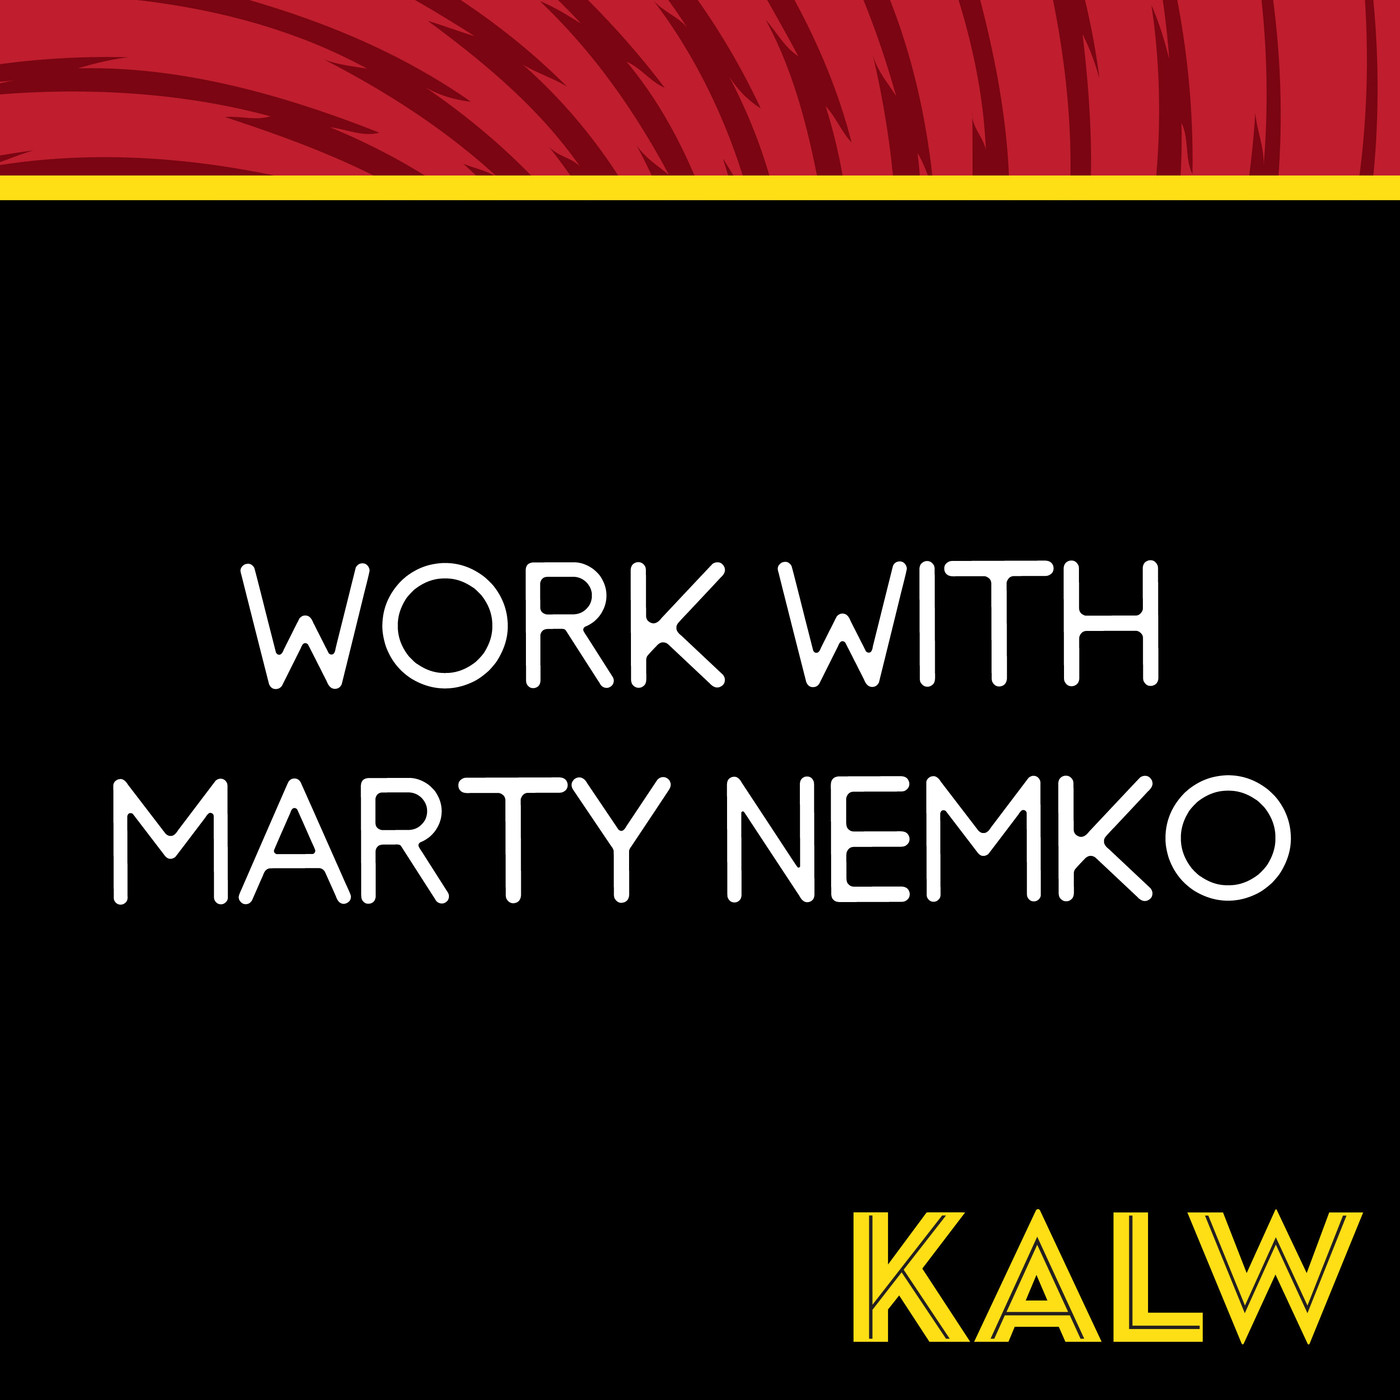 Work with Marty Nemko